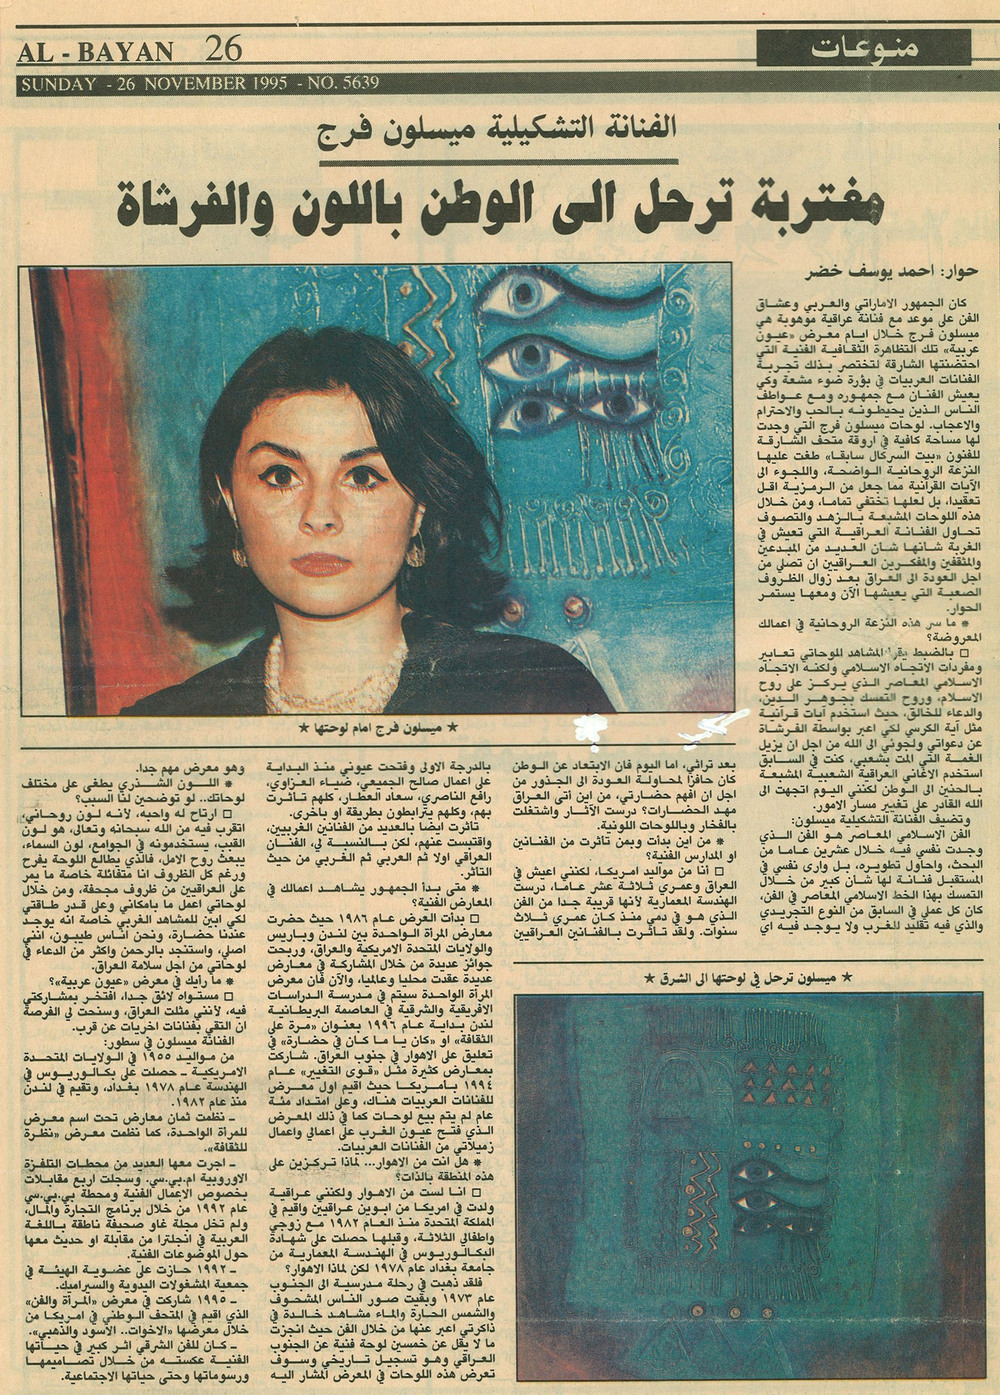 Al-Bayan Uyoun Arabiya Exhibition of Arab women artists at Beit al-Sirkal Sharjah UAE 1995